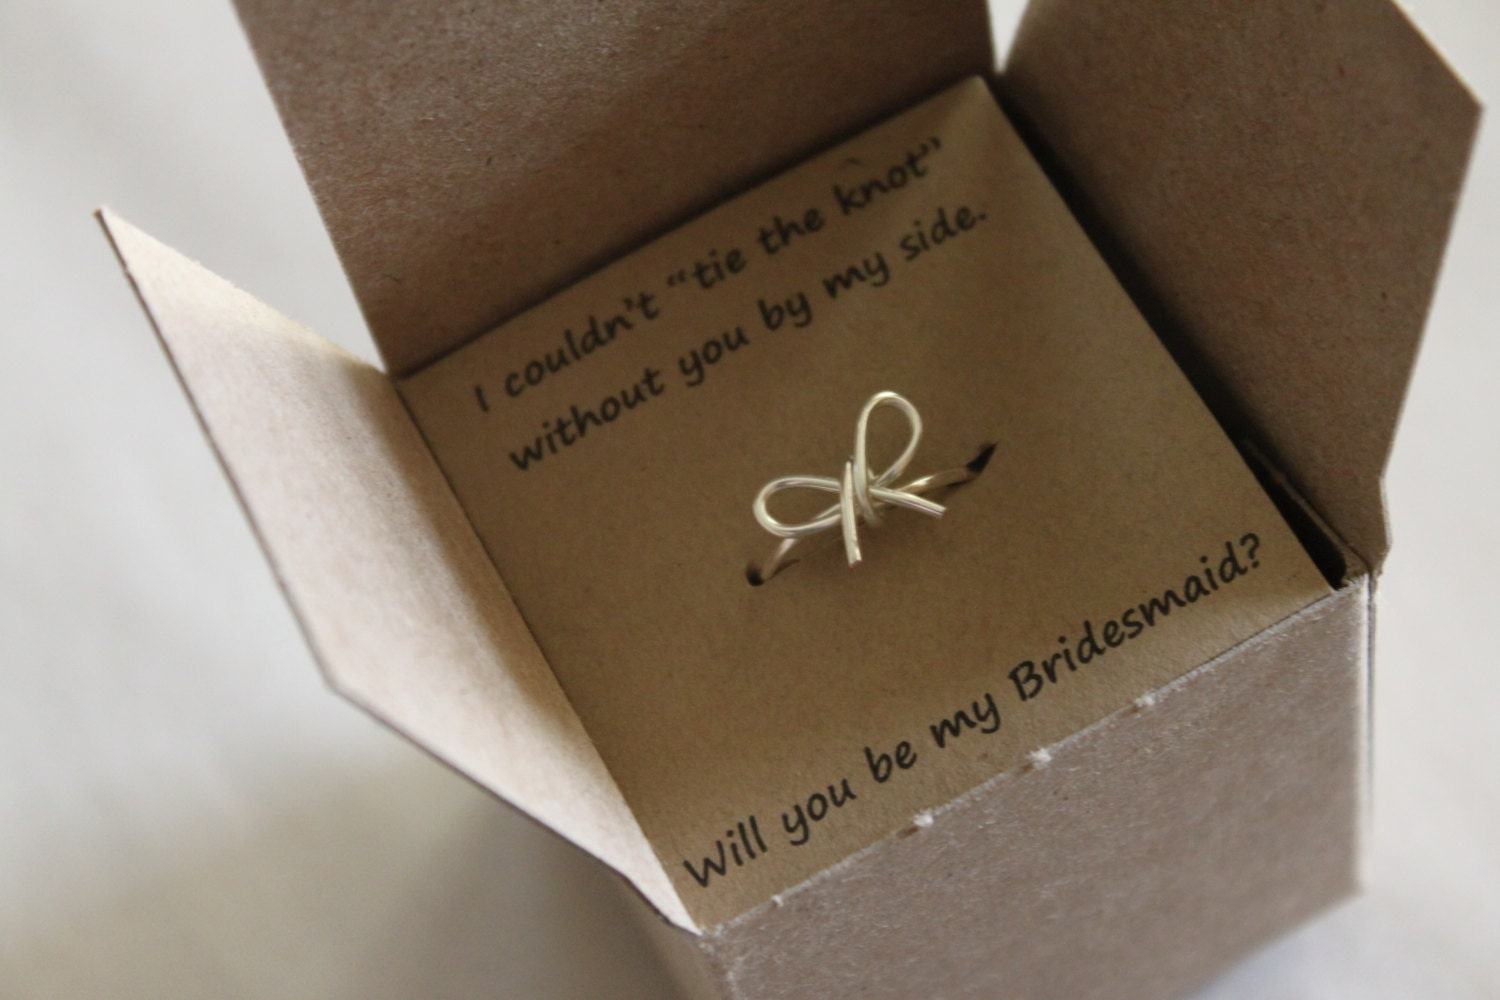 Maid Of Honor Gifts From Bride: Tie The Knot Ring Will You Be My Bridesmaid Gift Maid Of